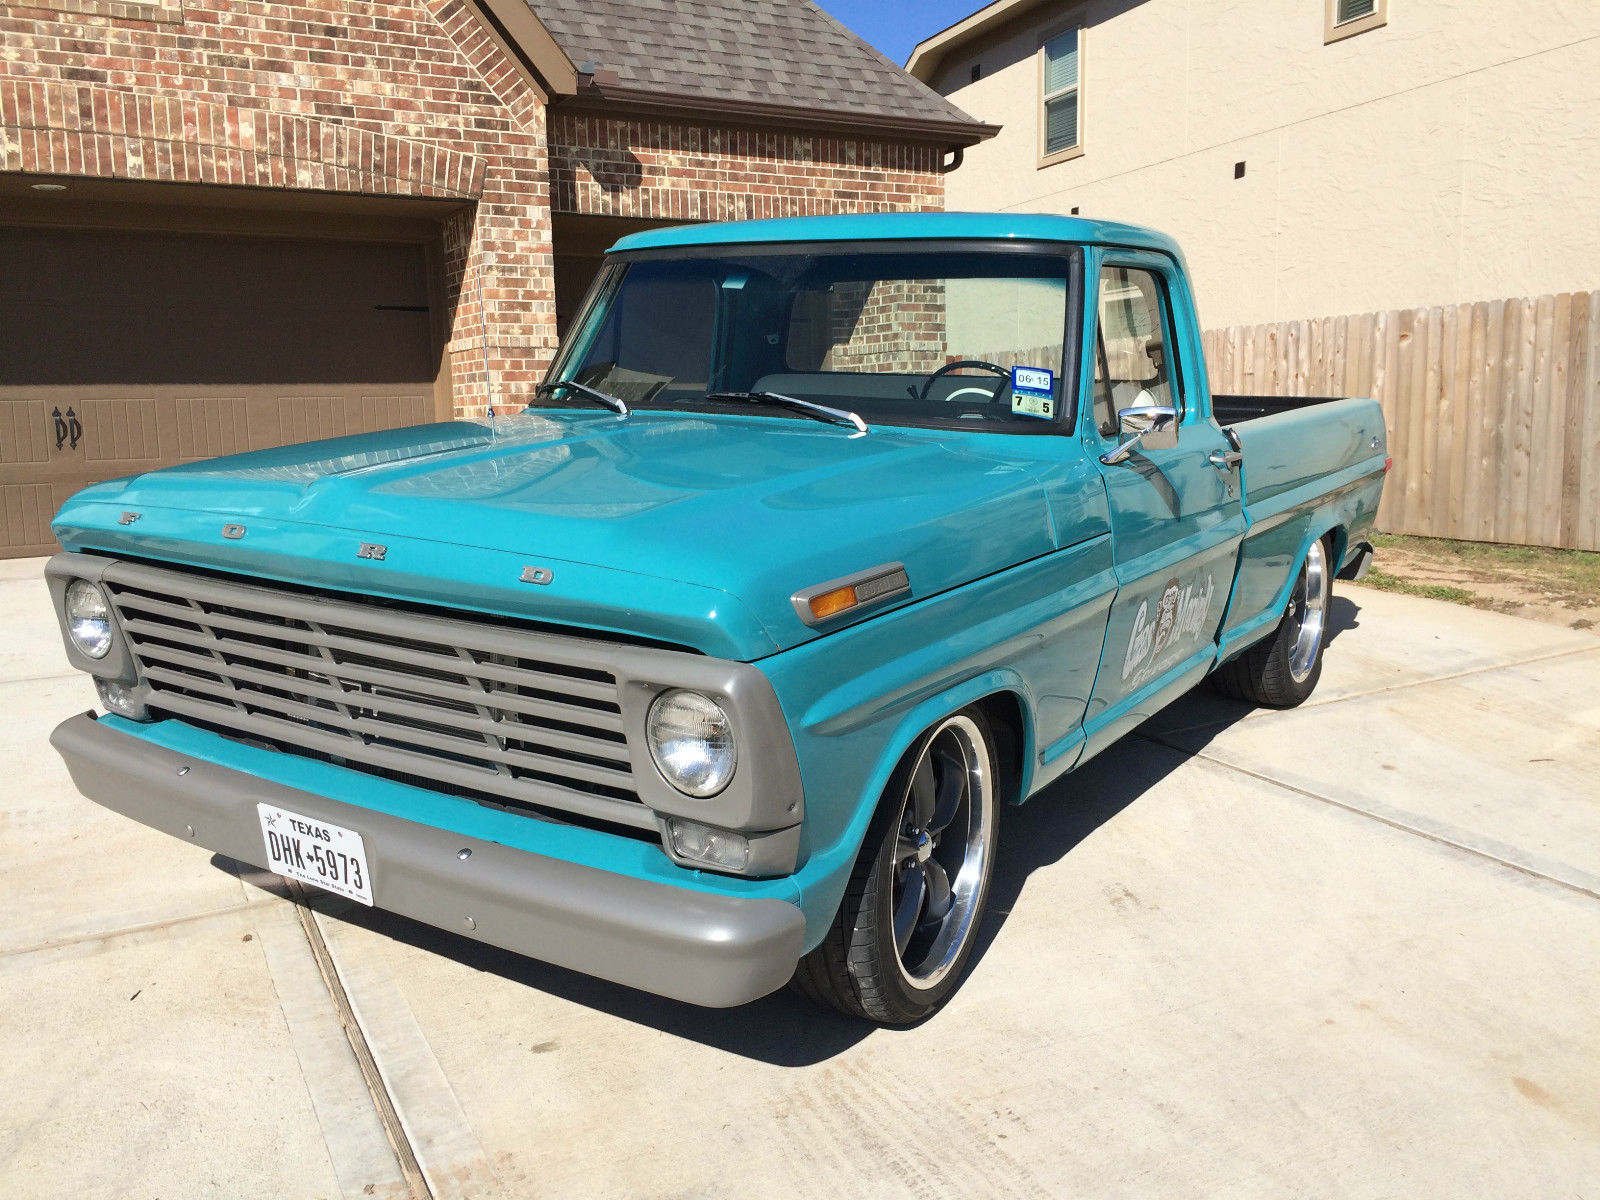 Gas monkey garage built ford f100 short bed truck for Garage ford valenciennes